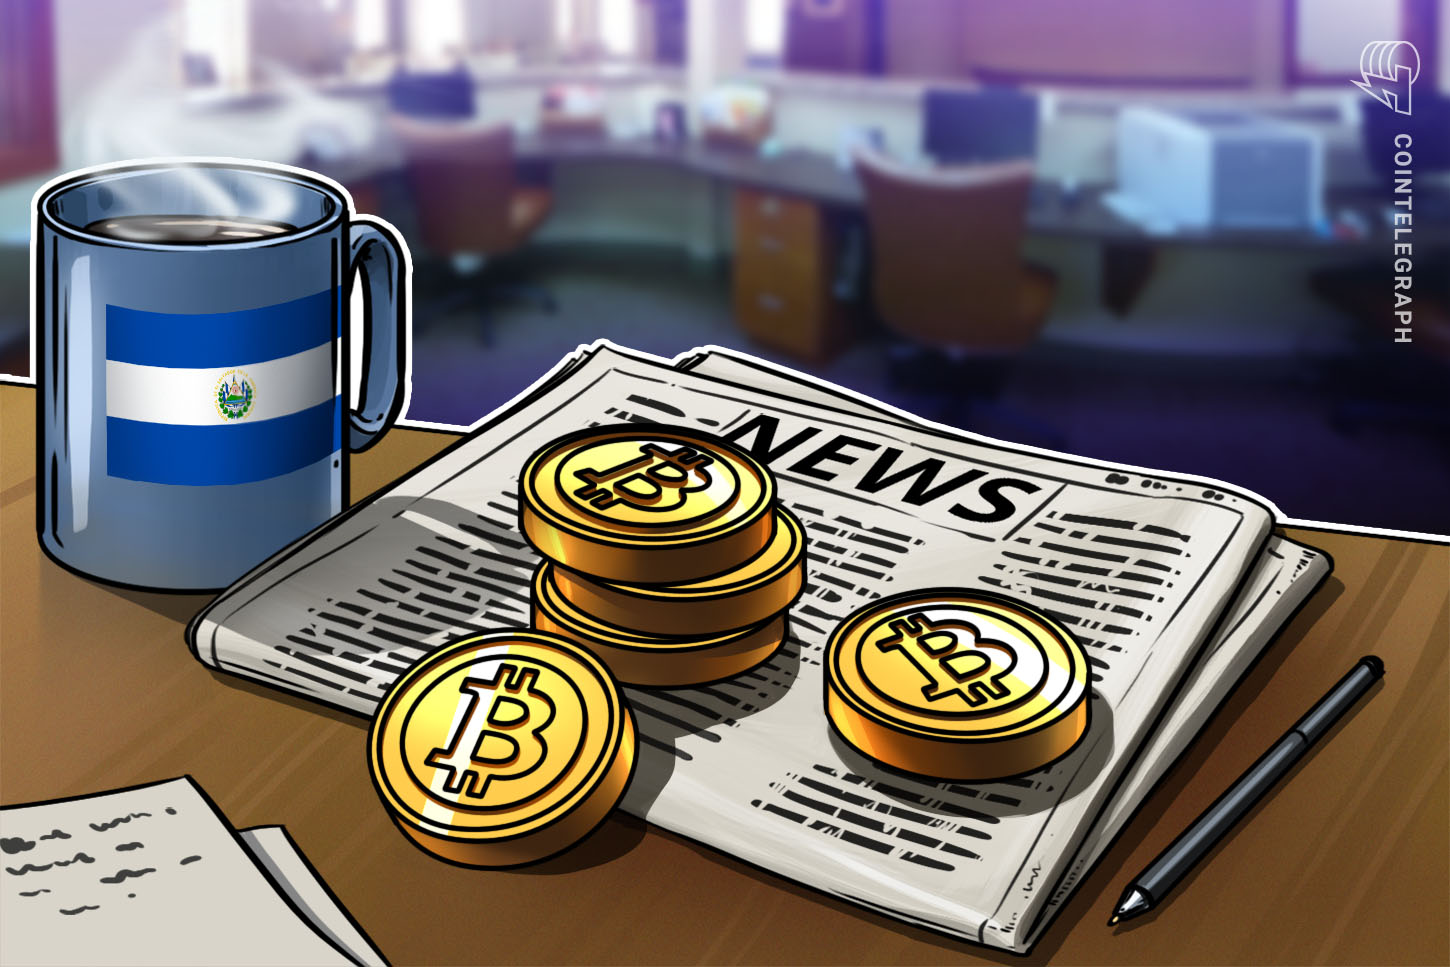 Salvadorans will not be forced to use the government's Bitcoin wallet